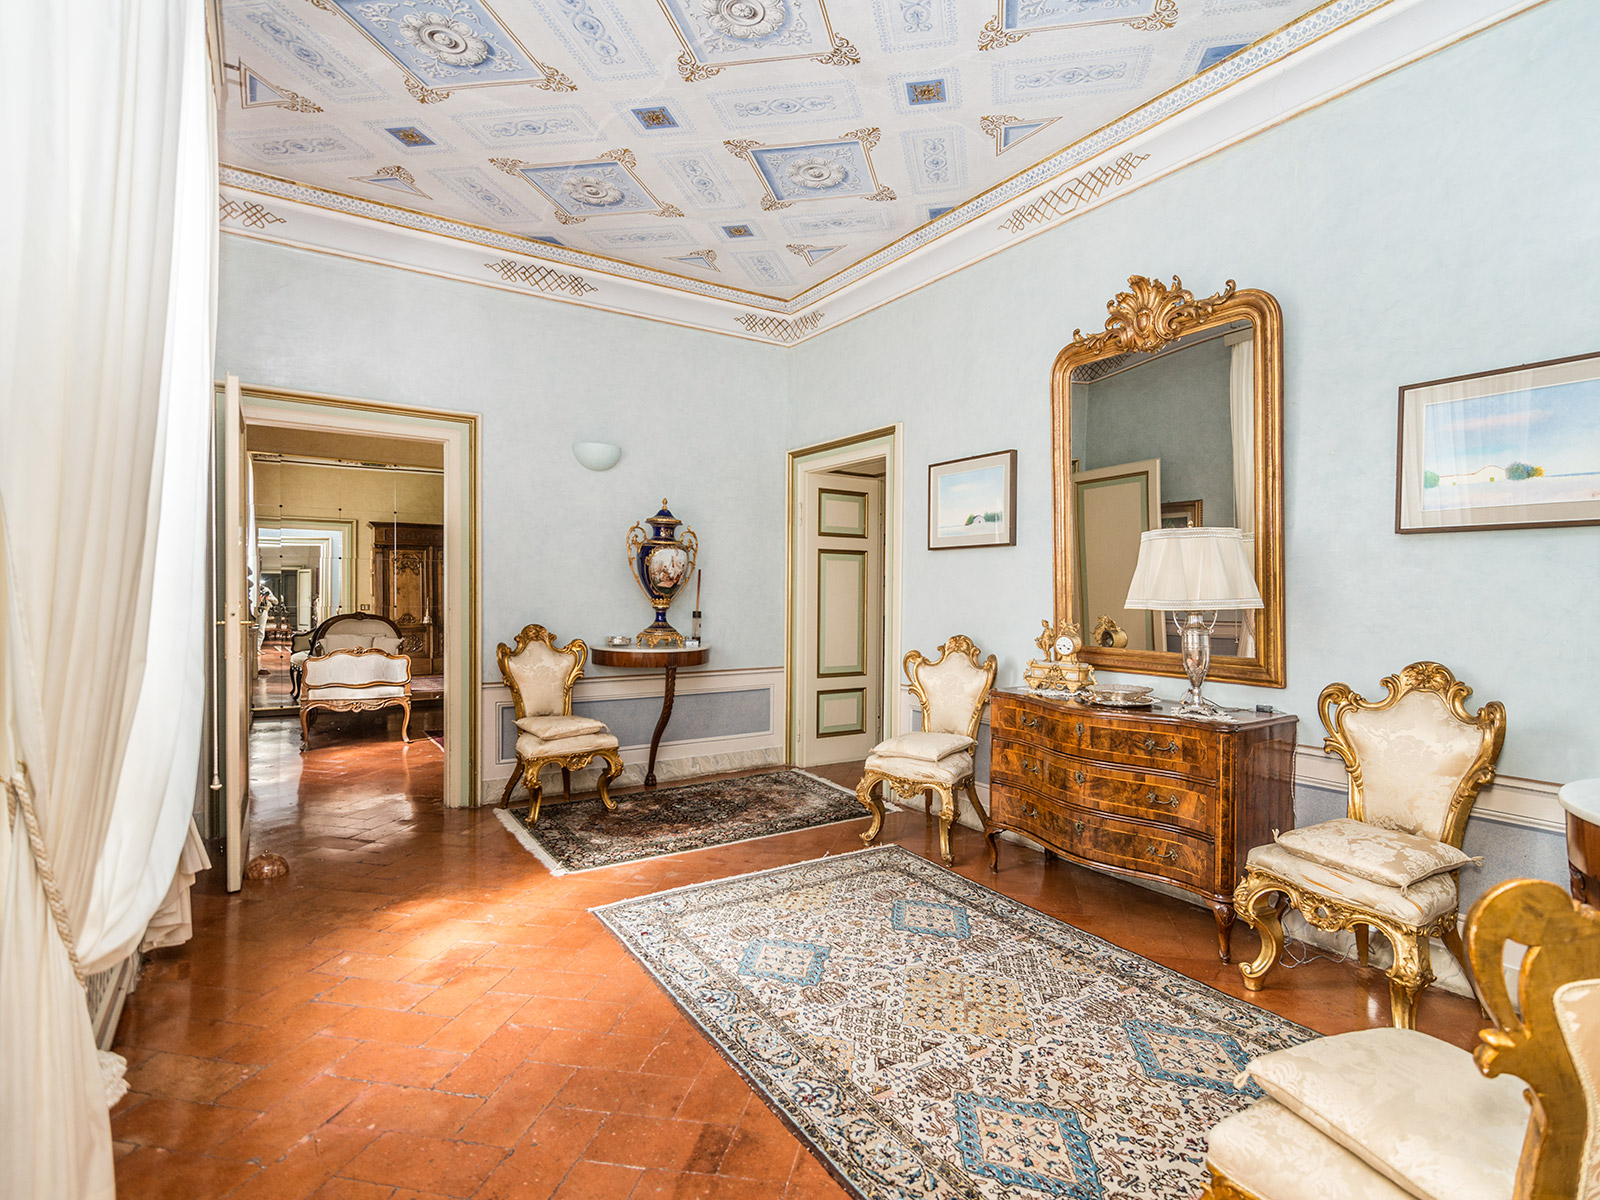 Additional photo for property listing at Domaine historique avec parc privé en  Franciacorta Brescia Brescia, Brescia 25136 Italie